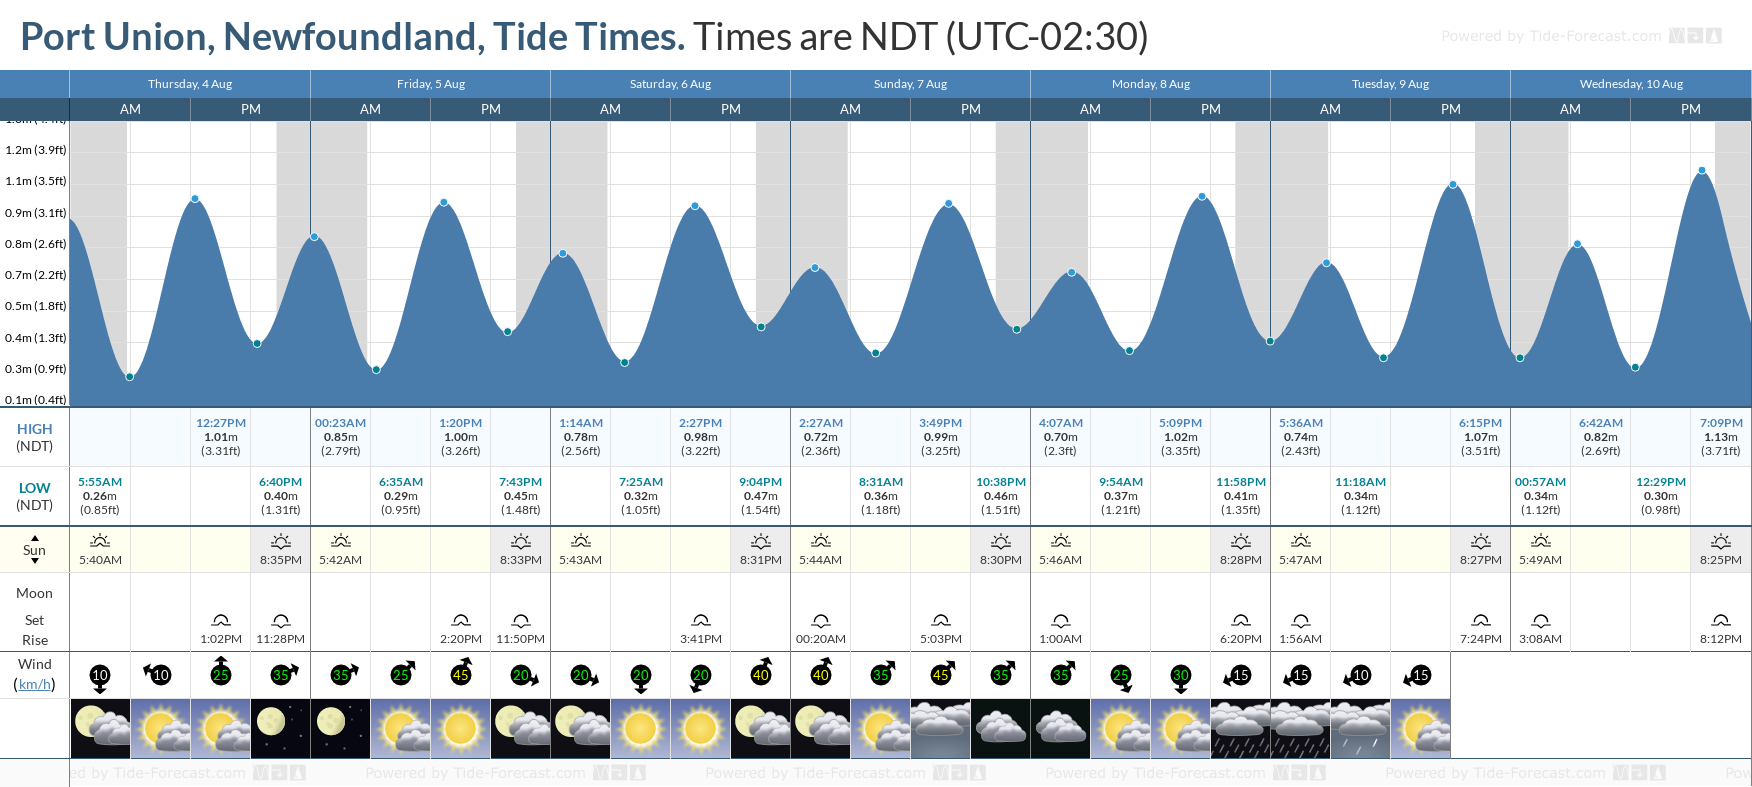 Port Union, Newfoundland Tide Chart including high and low tide tide times for the next 7 days